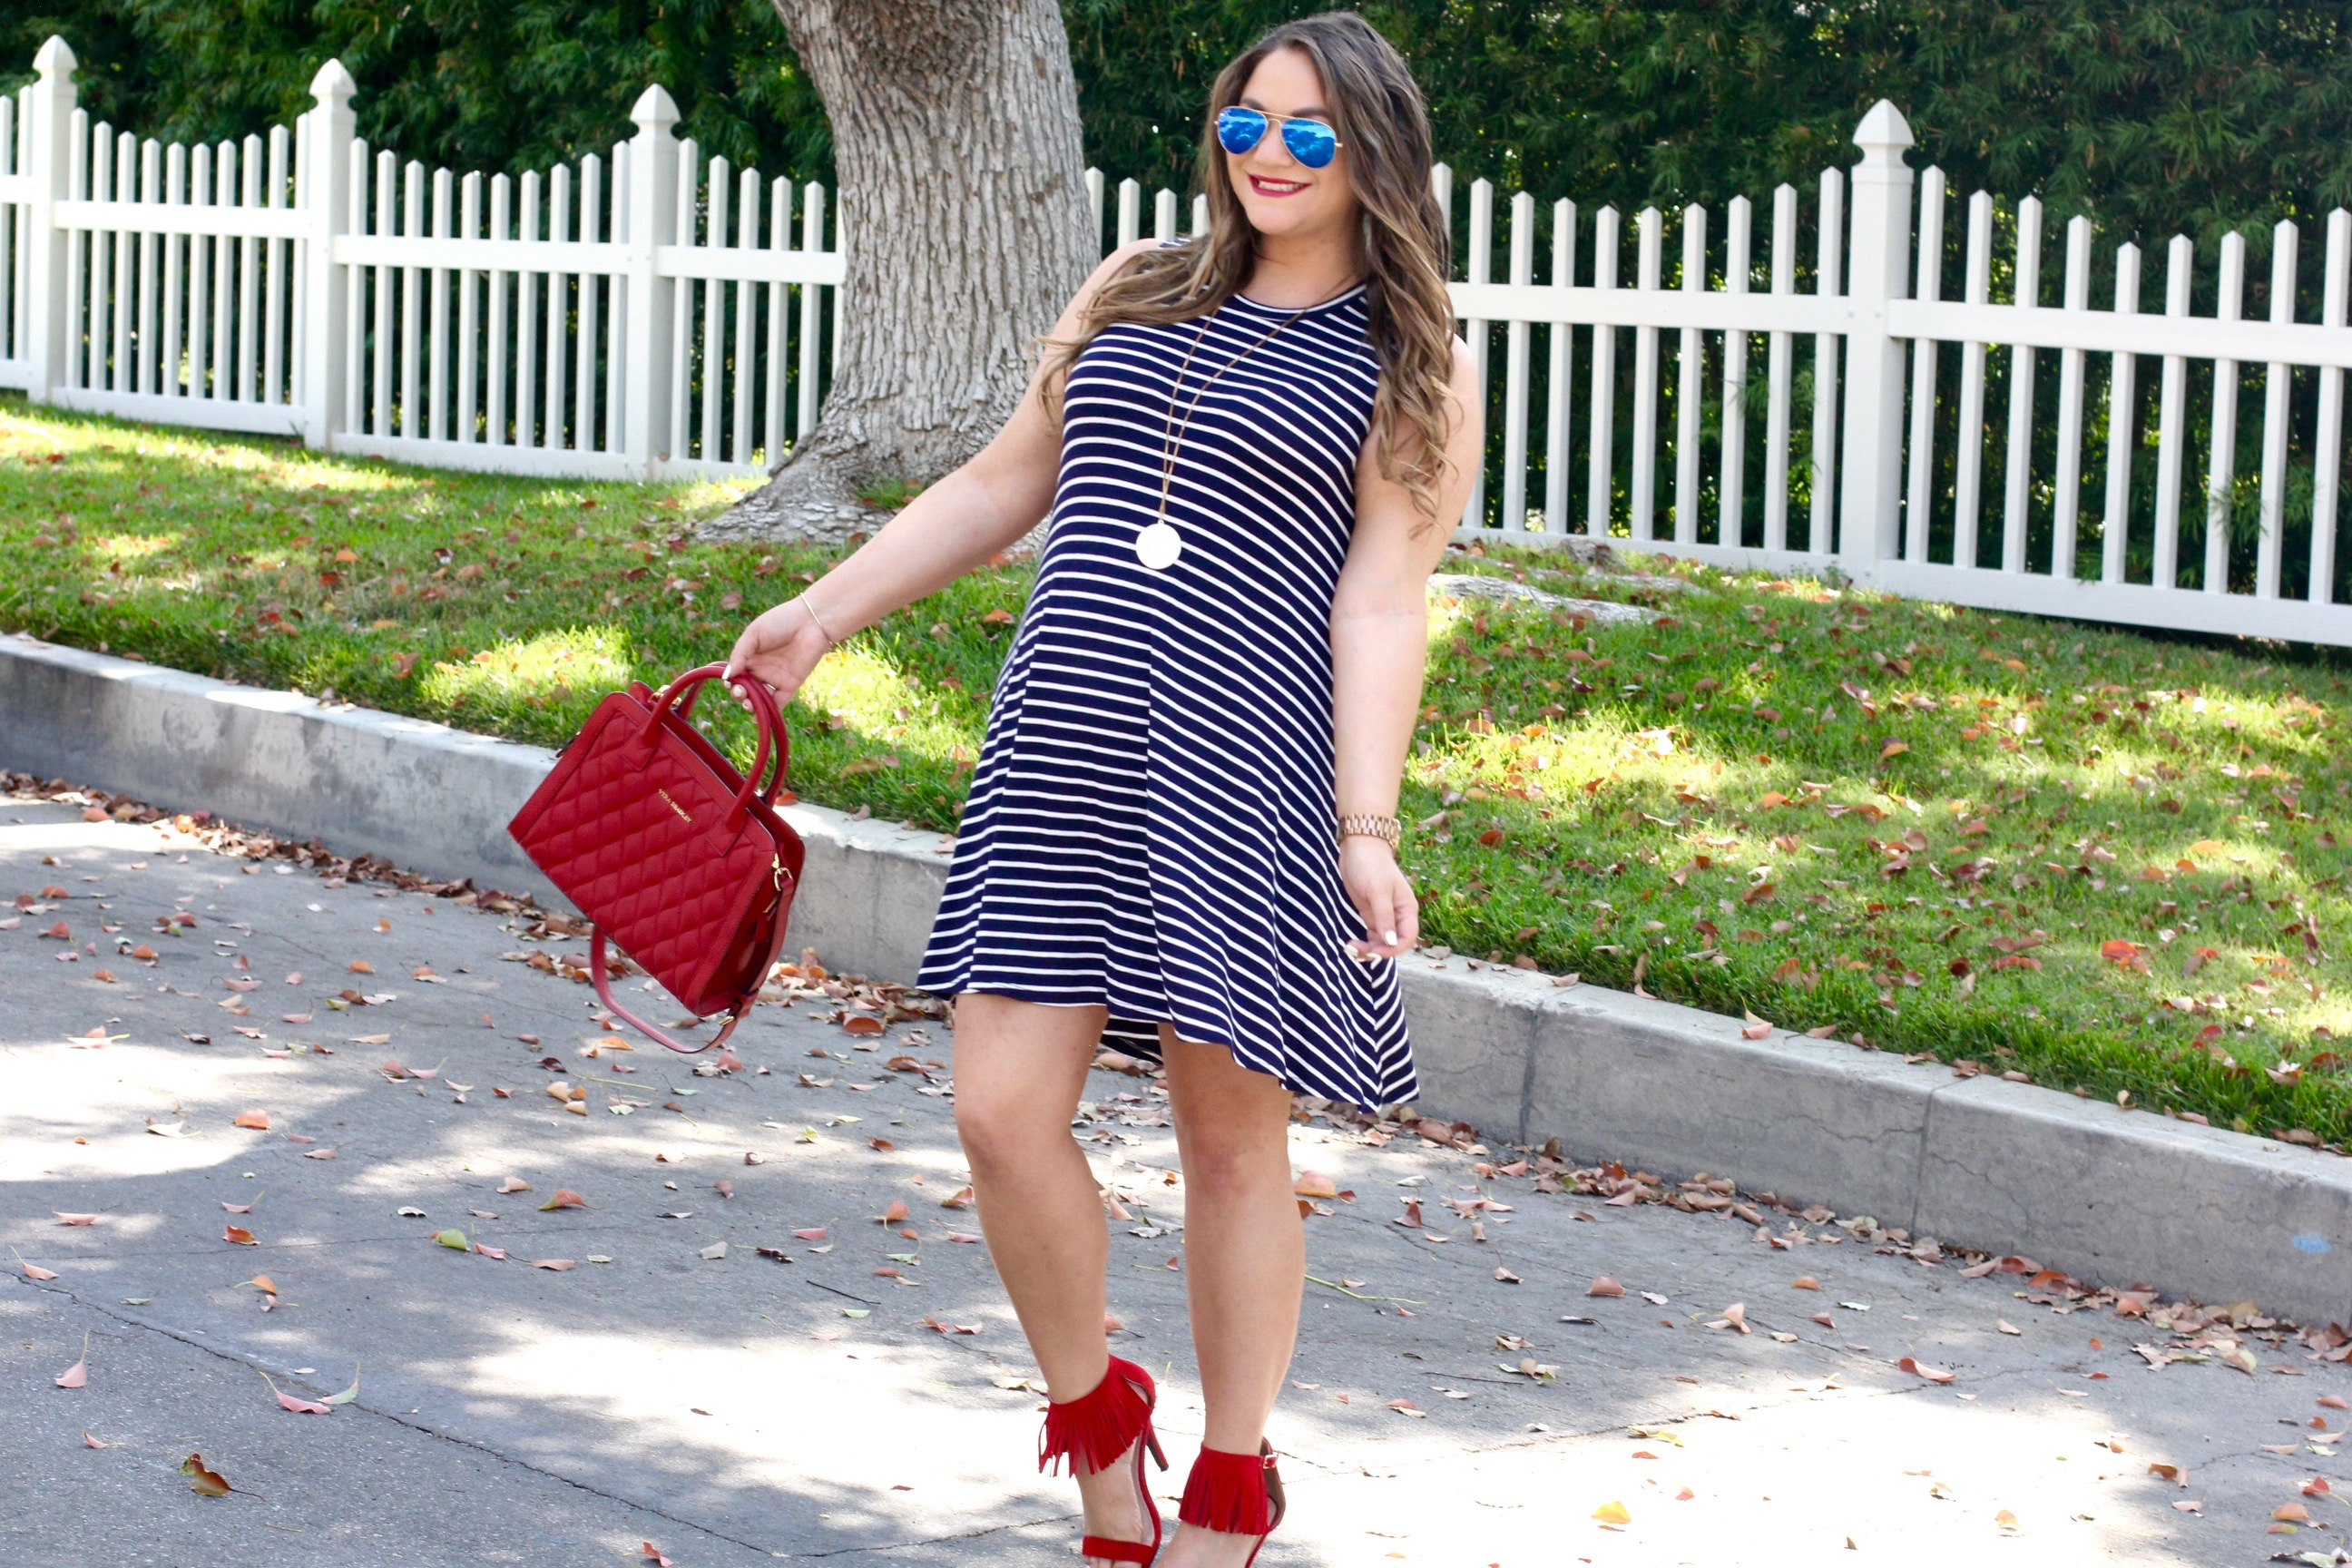 missyonmadison, melissa tierney, fashion blogger, la blogger, la style, what to wear for the 4th of july, july 4th, july 4th weekend, 4th of july weekend, red fringe ankle strap heels, red fringe heels, red fringe sandals, patriotic style, a byer dress, navy and white striped dress, navy striped dress, red quilted bag, vera bradley, red vera bradley satchel, ray bans, blue mirrored aviators, outfit inspo for the 4th of july, how to wear stripes,